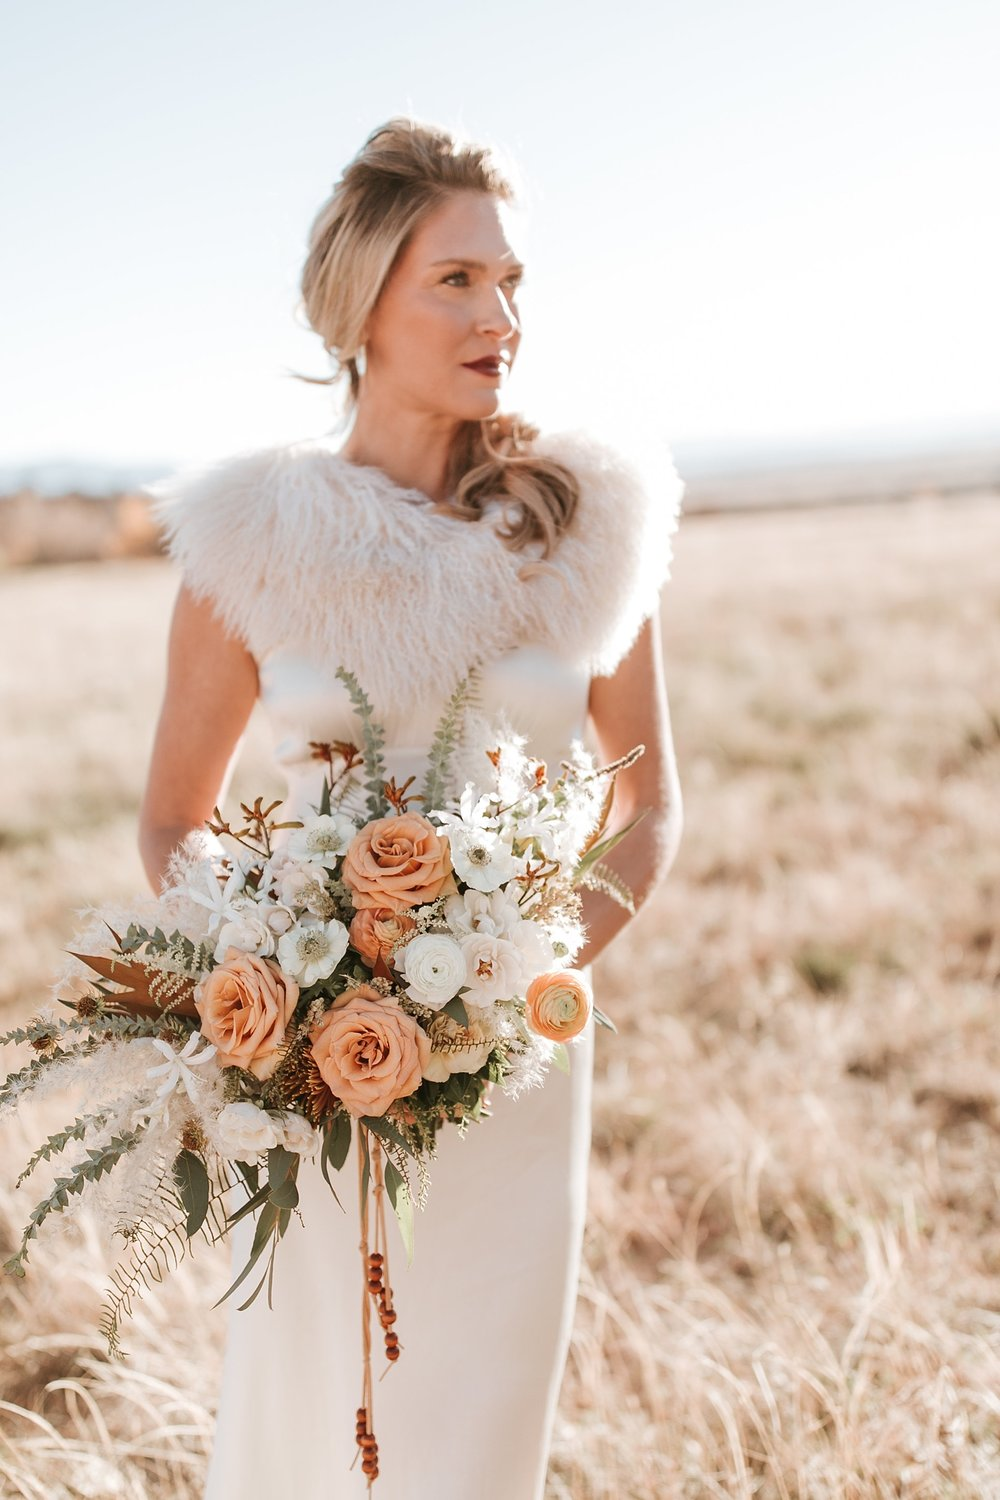 Alicia+lucia+photography+-+albuquerque+wedding+photographer+-+santa+fe+wedding+photography+-+new+mexico+wedding+photographer+-+new+mexico+ghost+ranch+wedding+-+styled+wedding+shoot_0033.jpg